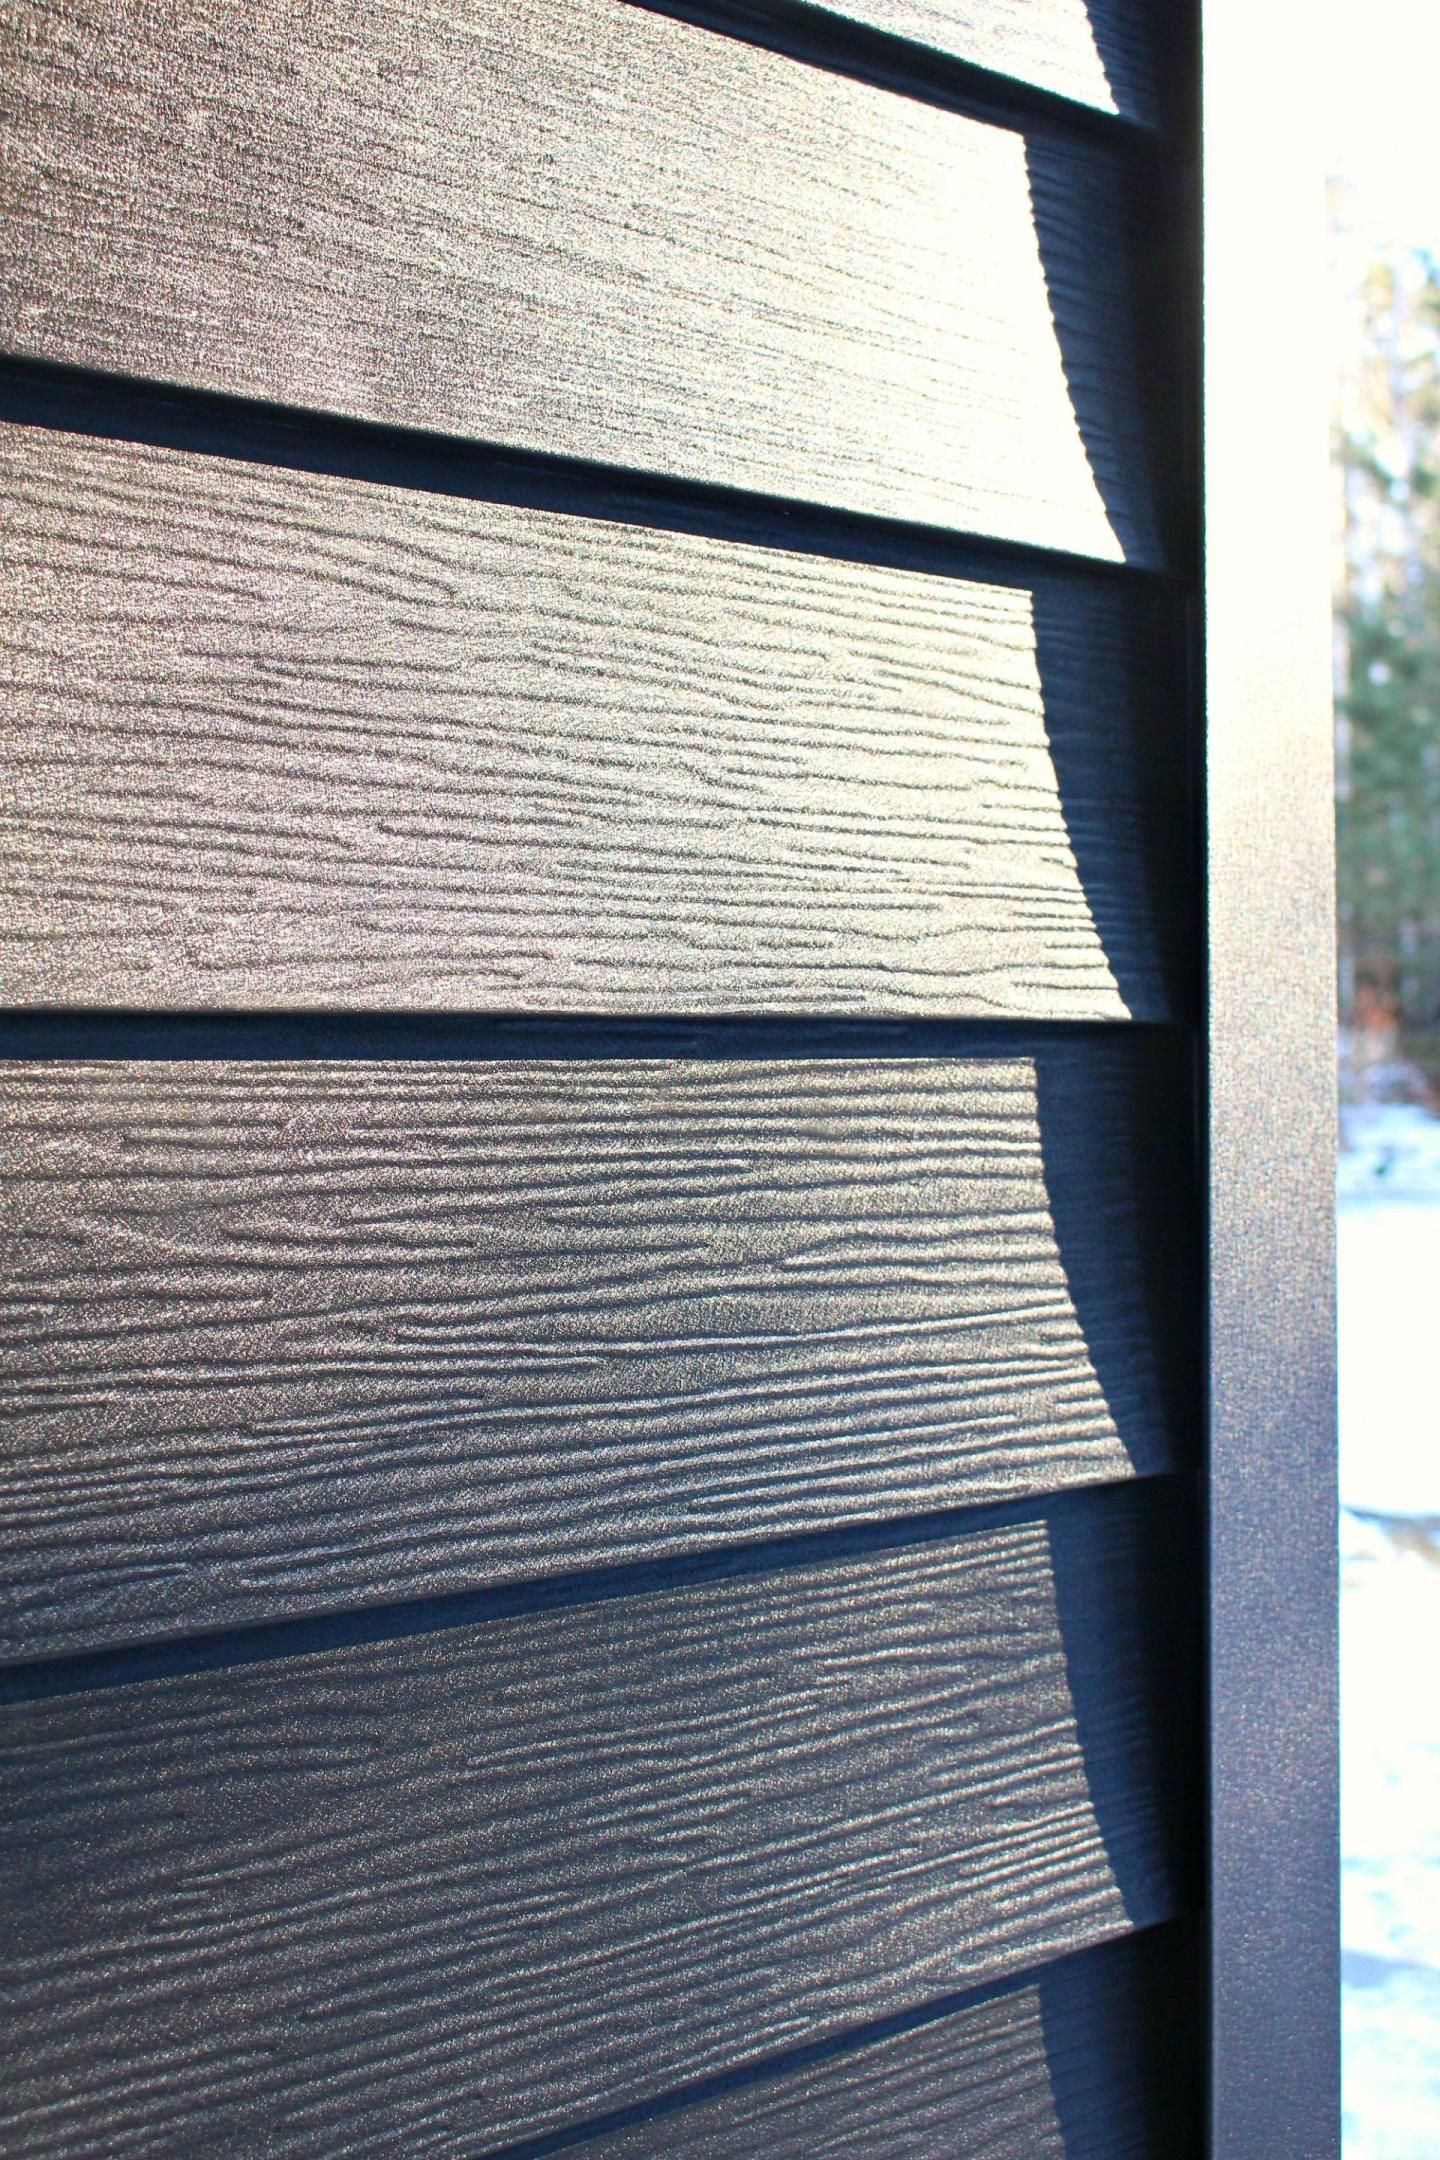 Dark Grey Metal Siding Siding That Sparkles Dans Le Lakehouse Metal Siding Steel Siding Metal Siding Colors